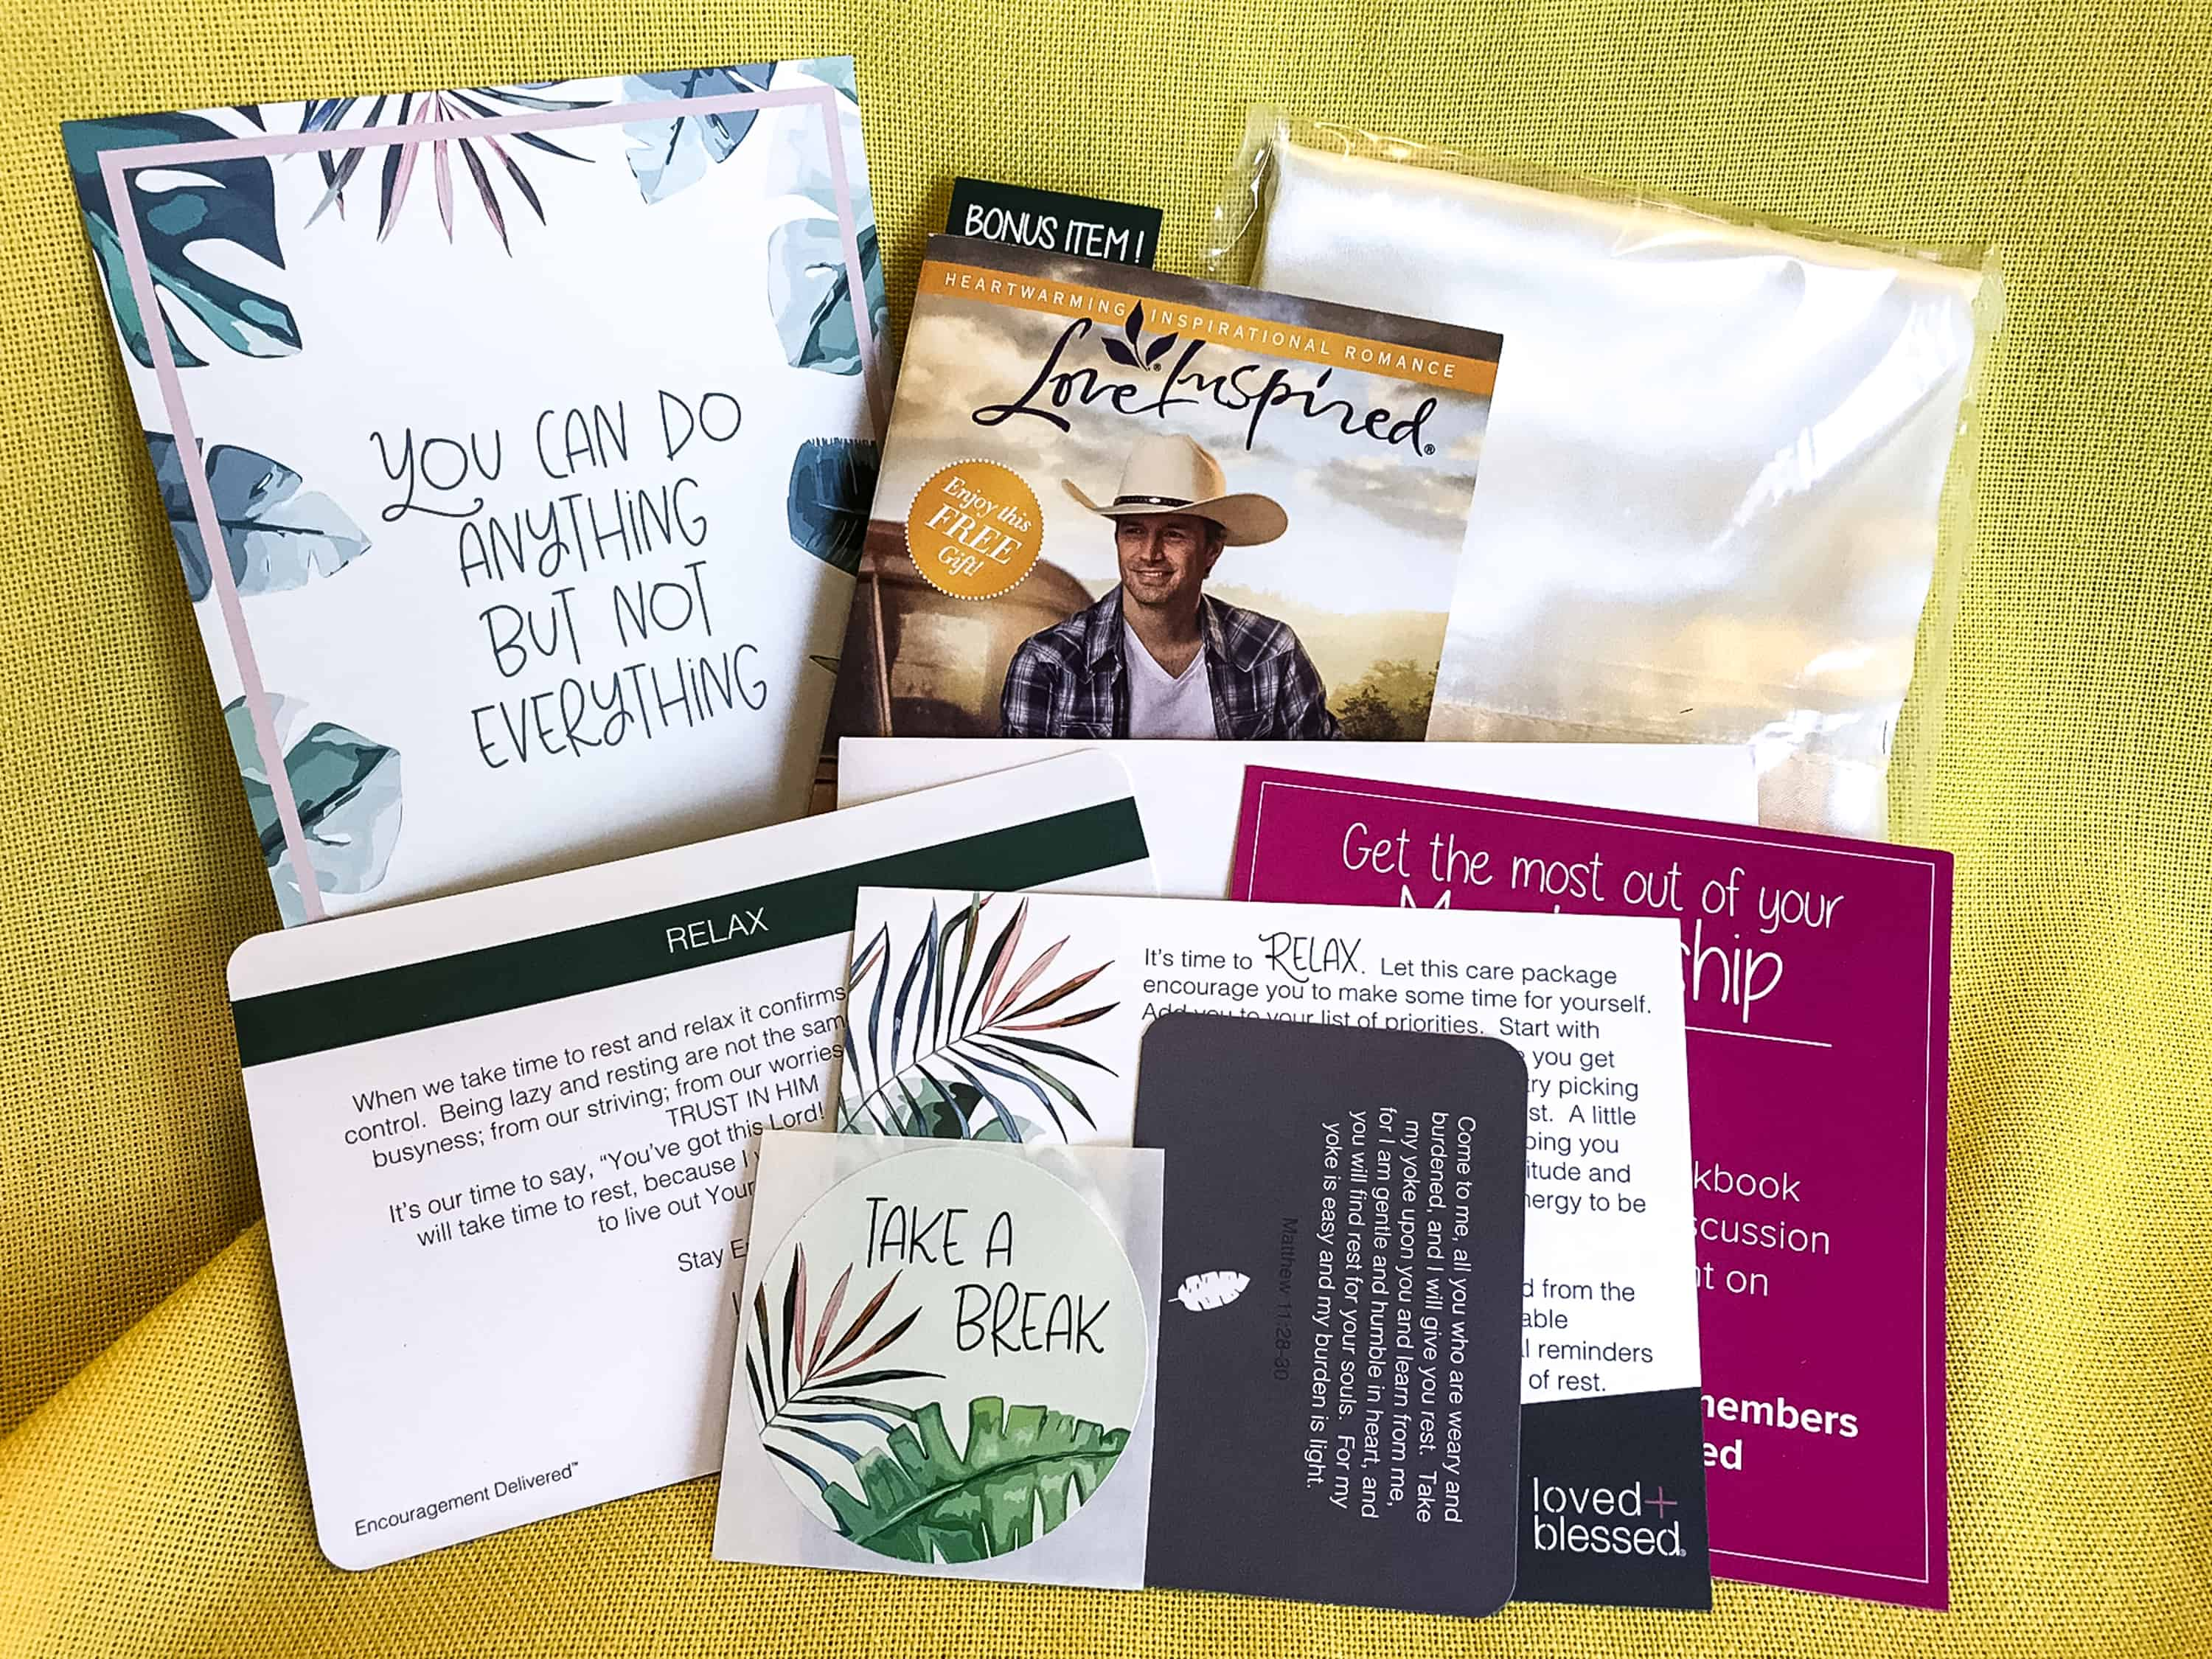 Loved+Blessed August 2018 Subscription Box Review + Coupon